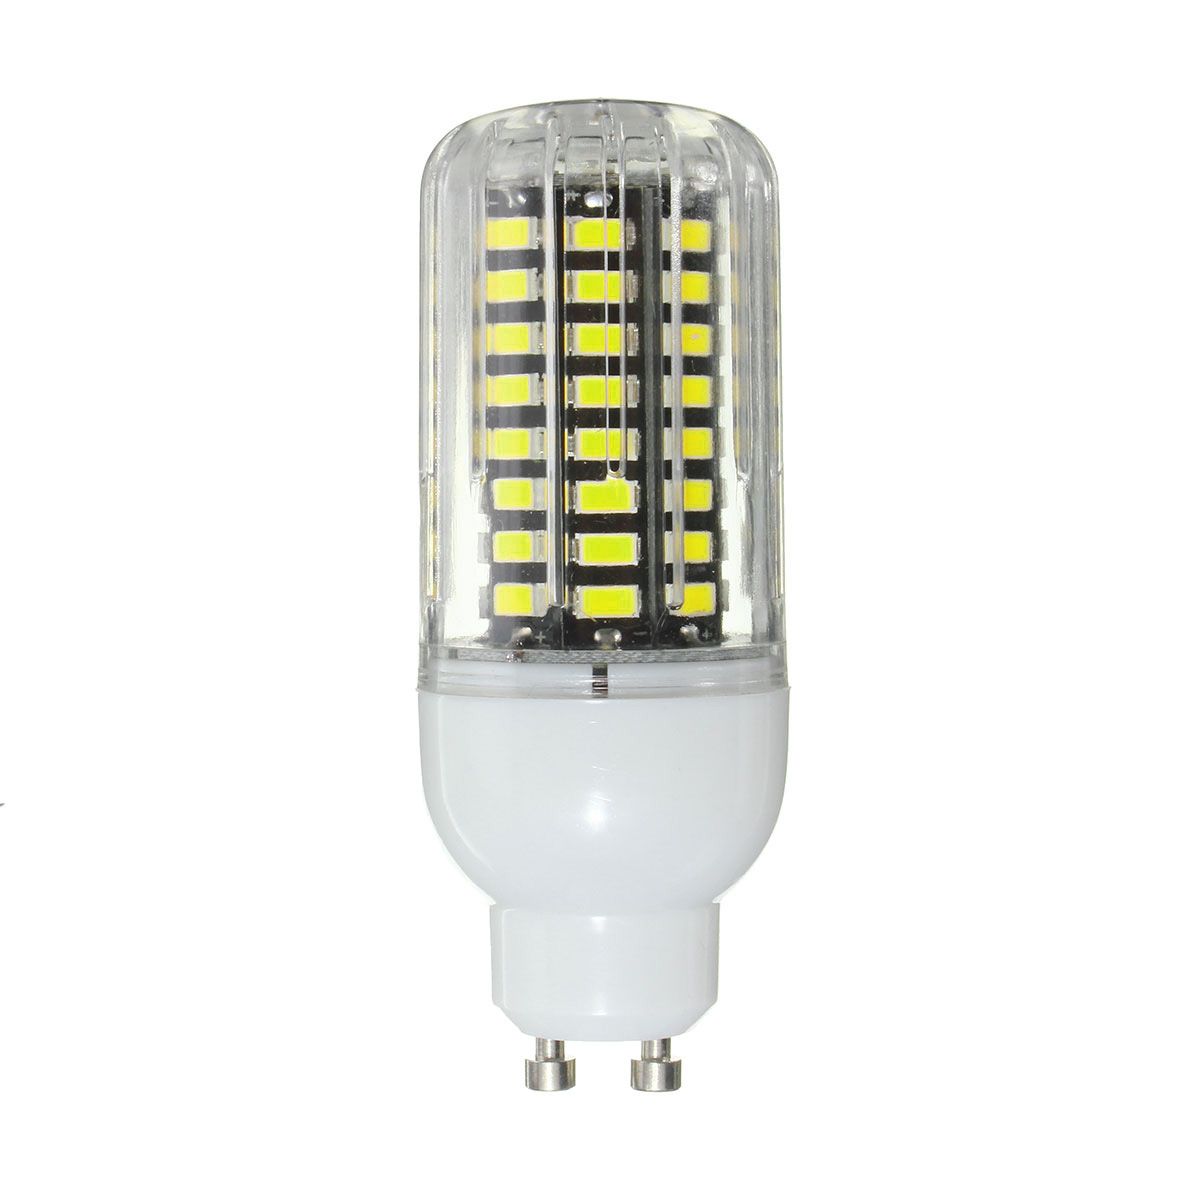 e14 e12 b22 g9 gu10 e27 led 7w 74 smd 5730 fireproof cover corn led bulb light ac110v alex nld. Black Bedroom Furniture Sets. Home Design Ideas